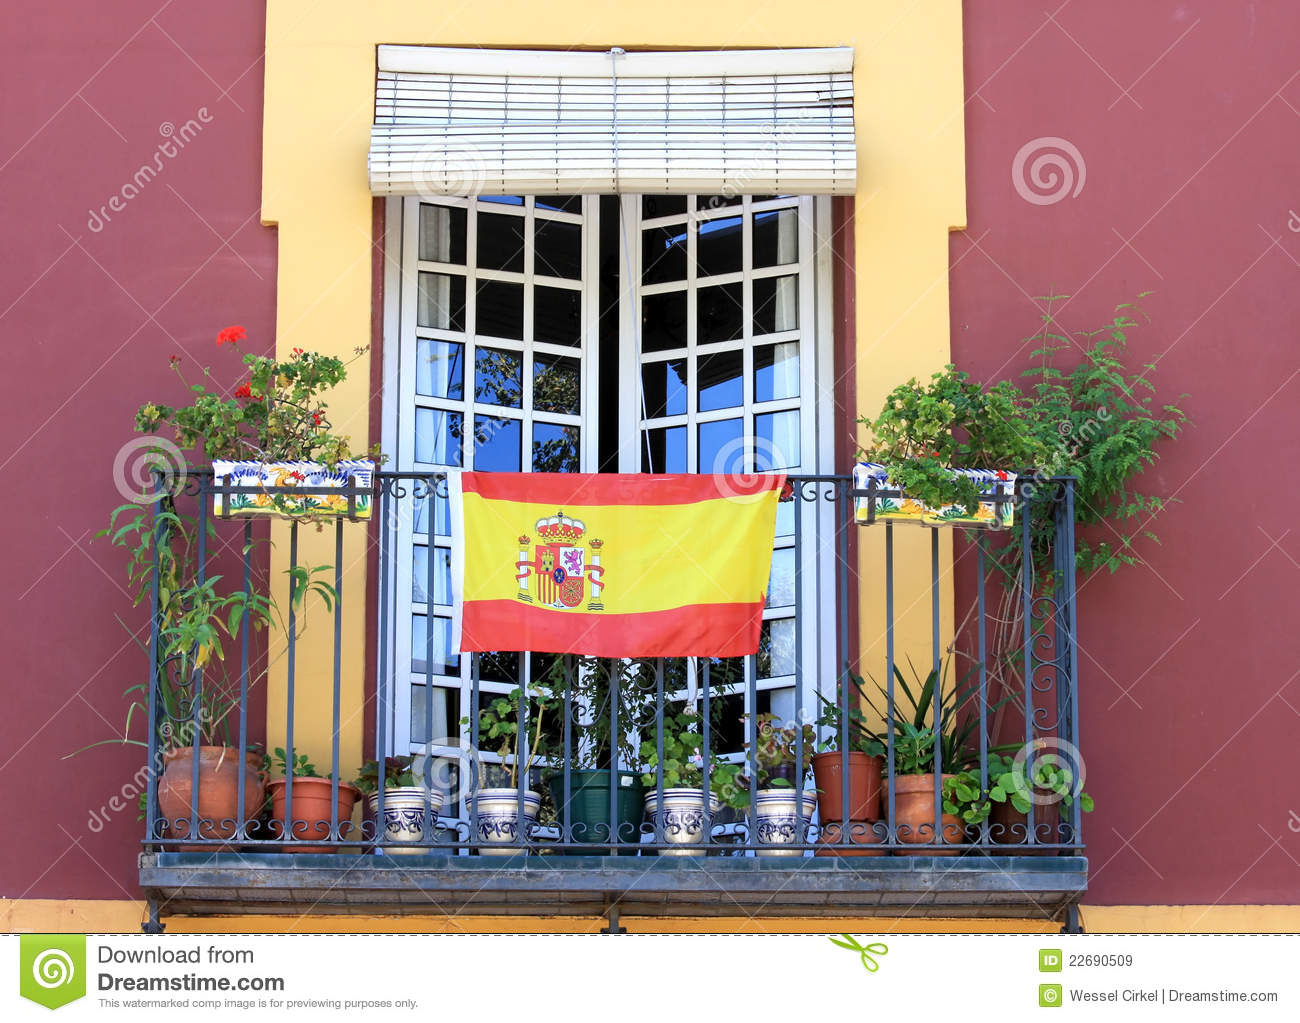 Balcony with spanish flag in seville spain stock image for Balcony in spanish